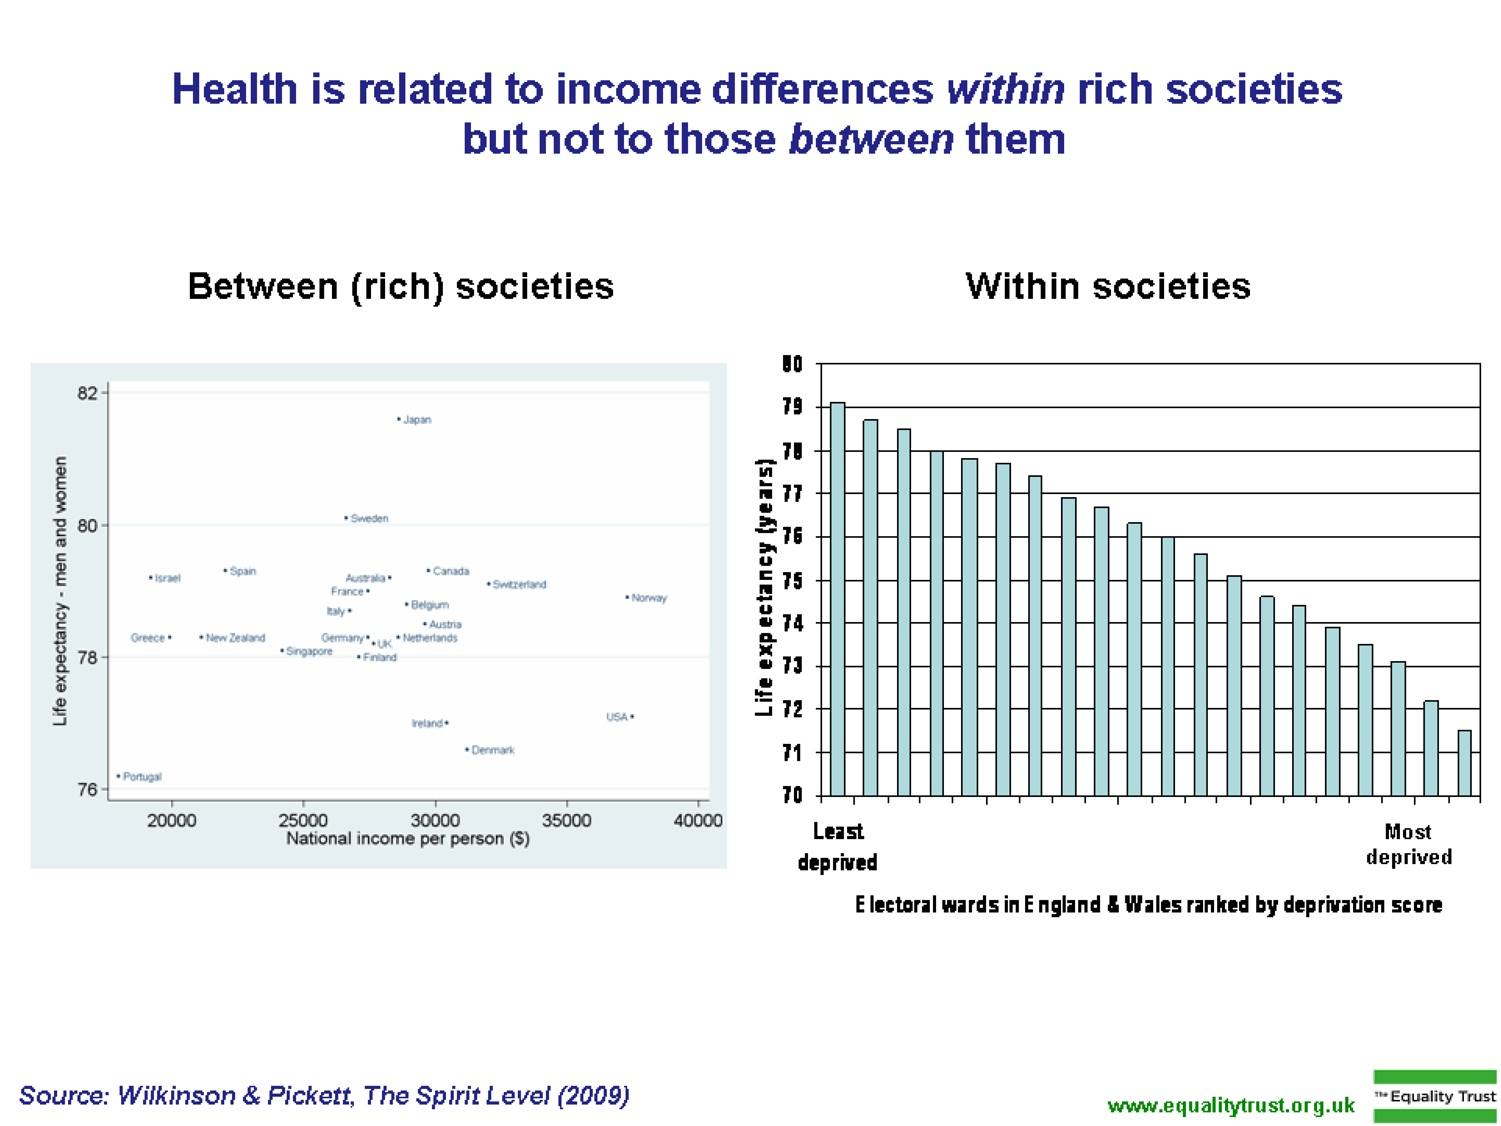 health inequality in uk Challenging mental health inequalities certain population subgroups are at higher risk of mental health problems because of greater exposure and vulnerability to unfavourable social, economic, and environmental circumstances these intersect with factors including gender, ethnicity and disability, with devsatating circumstances in many cases.